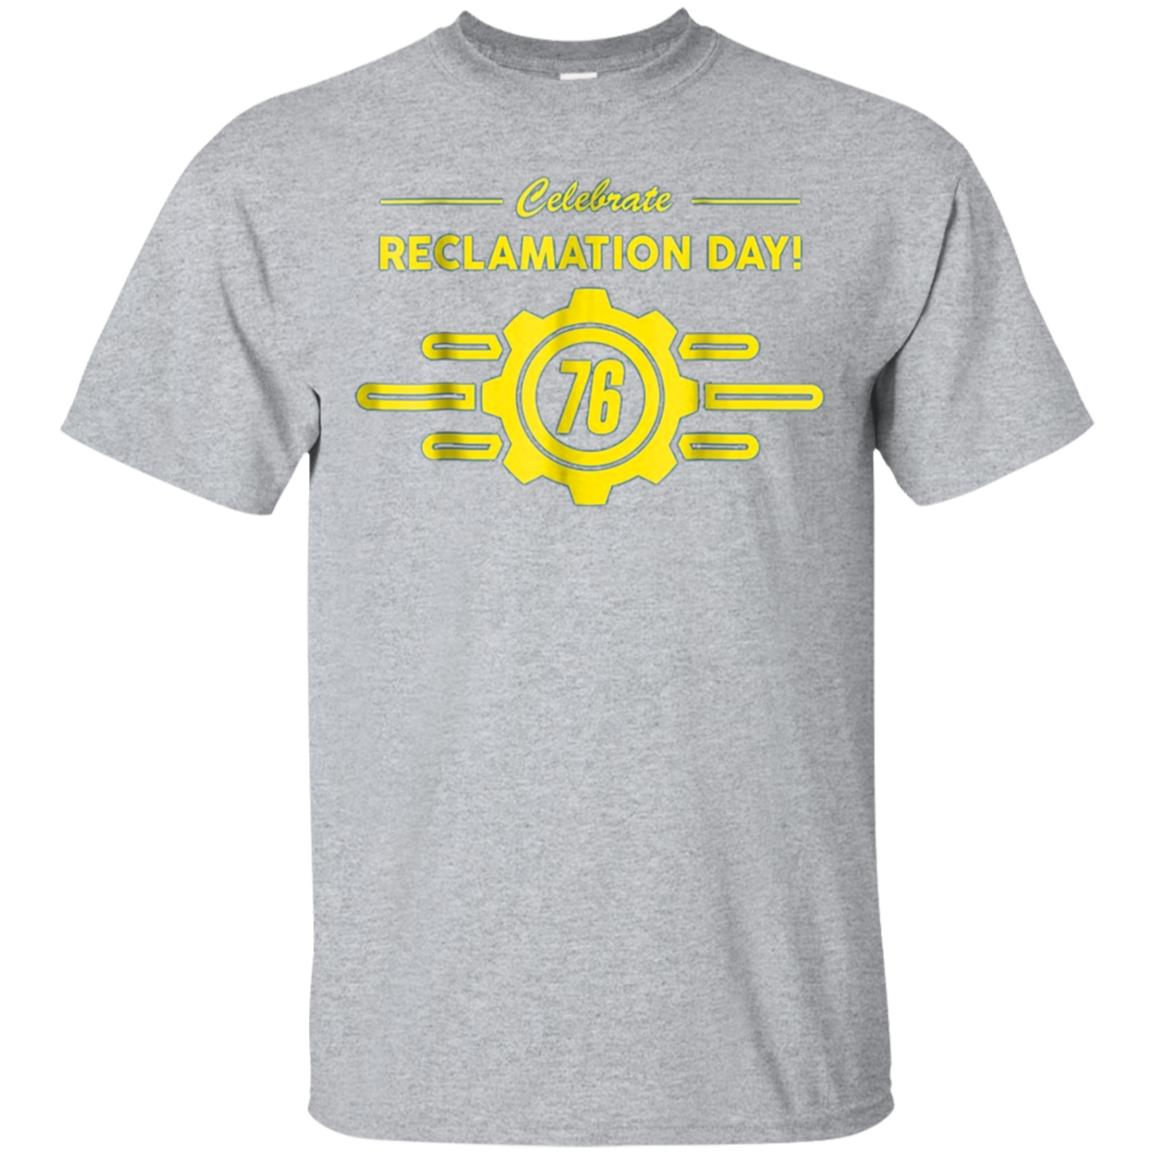 Fall out 76 Reclamation Day t-shirt for men women 99promocode